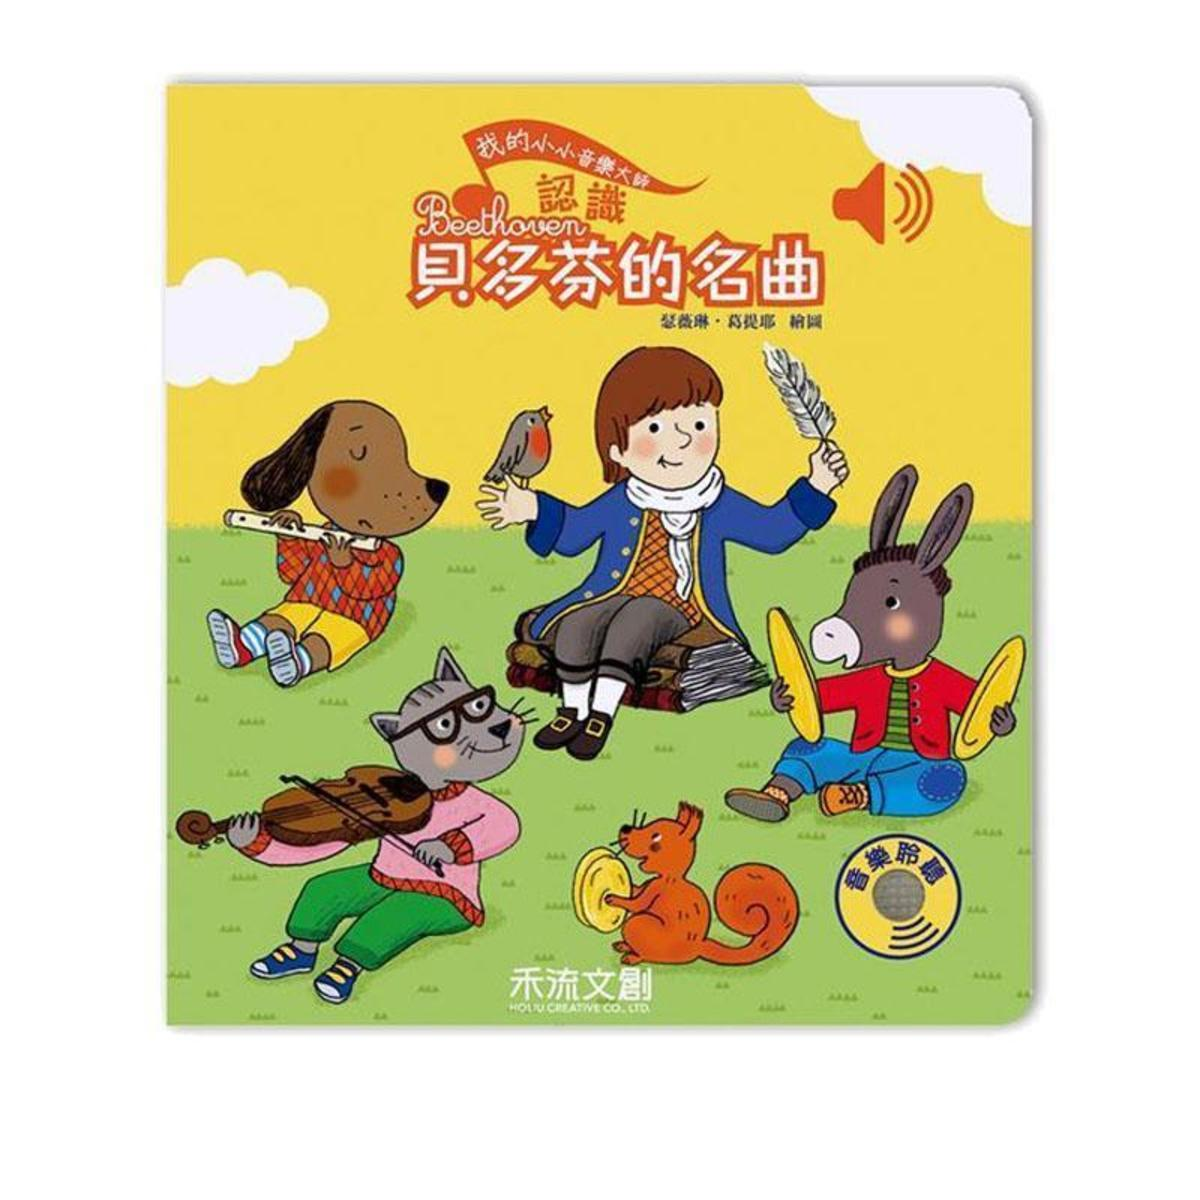 Publishing Know the famous songs of Beethoven Taiwan Import